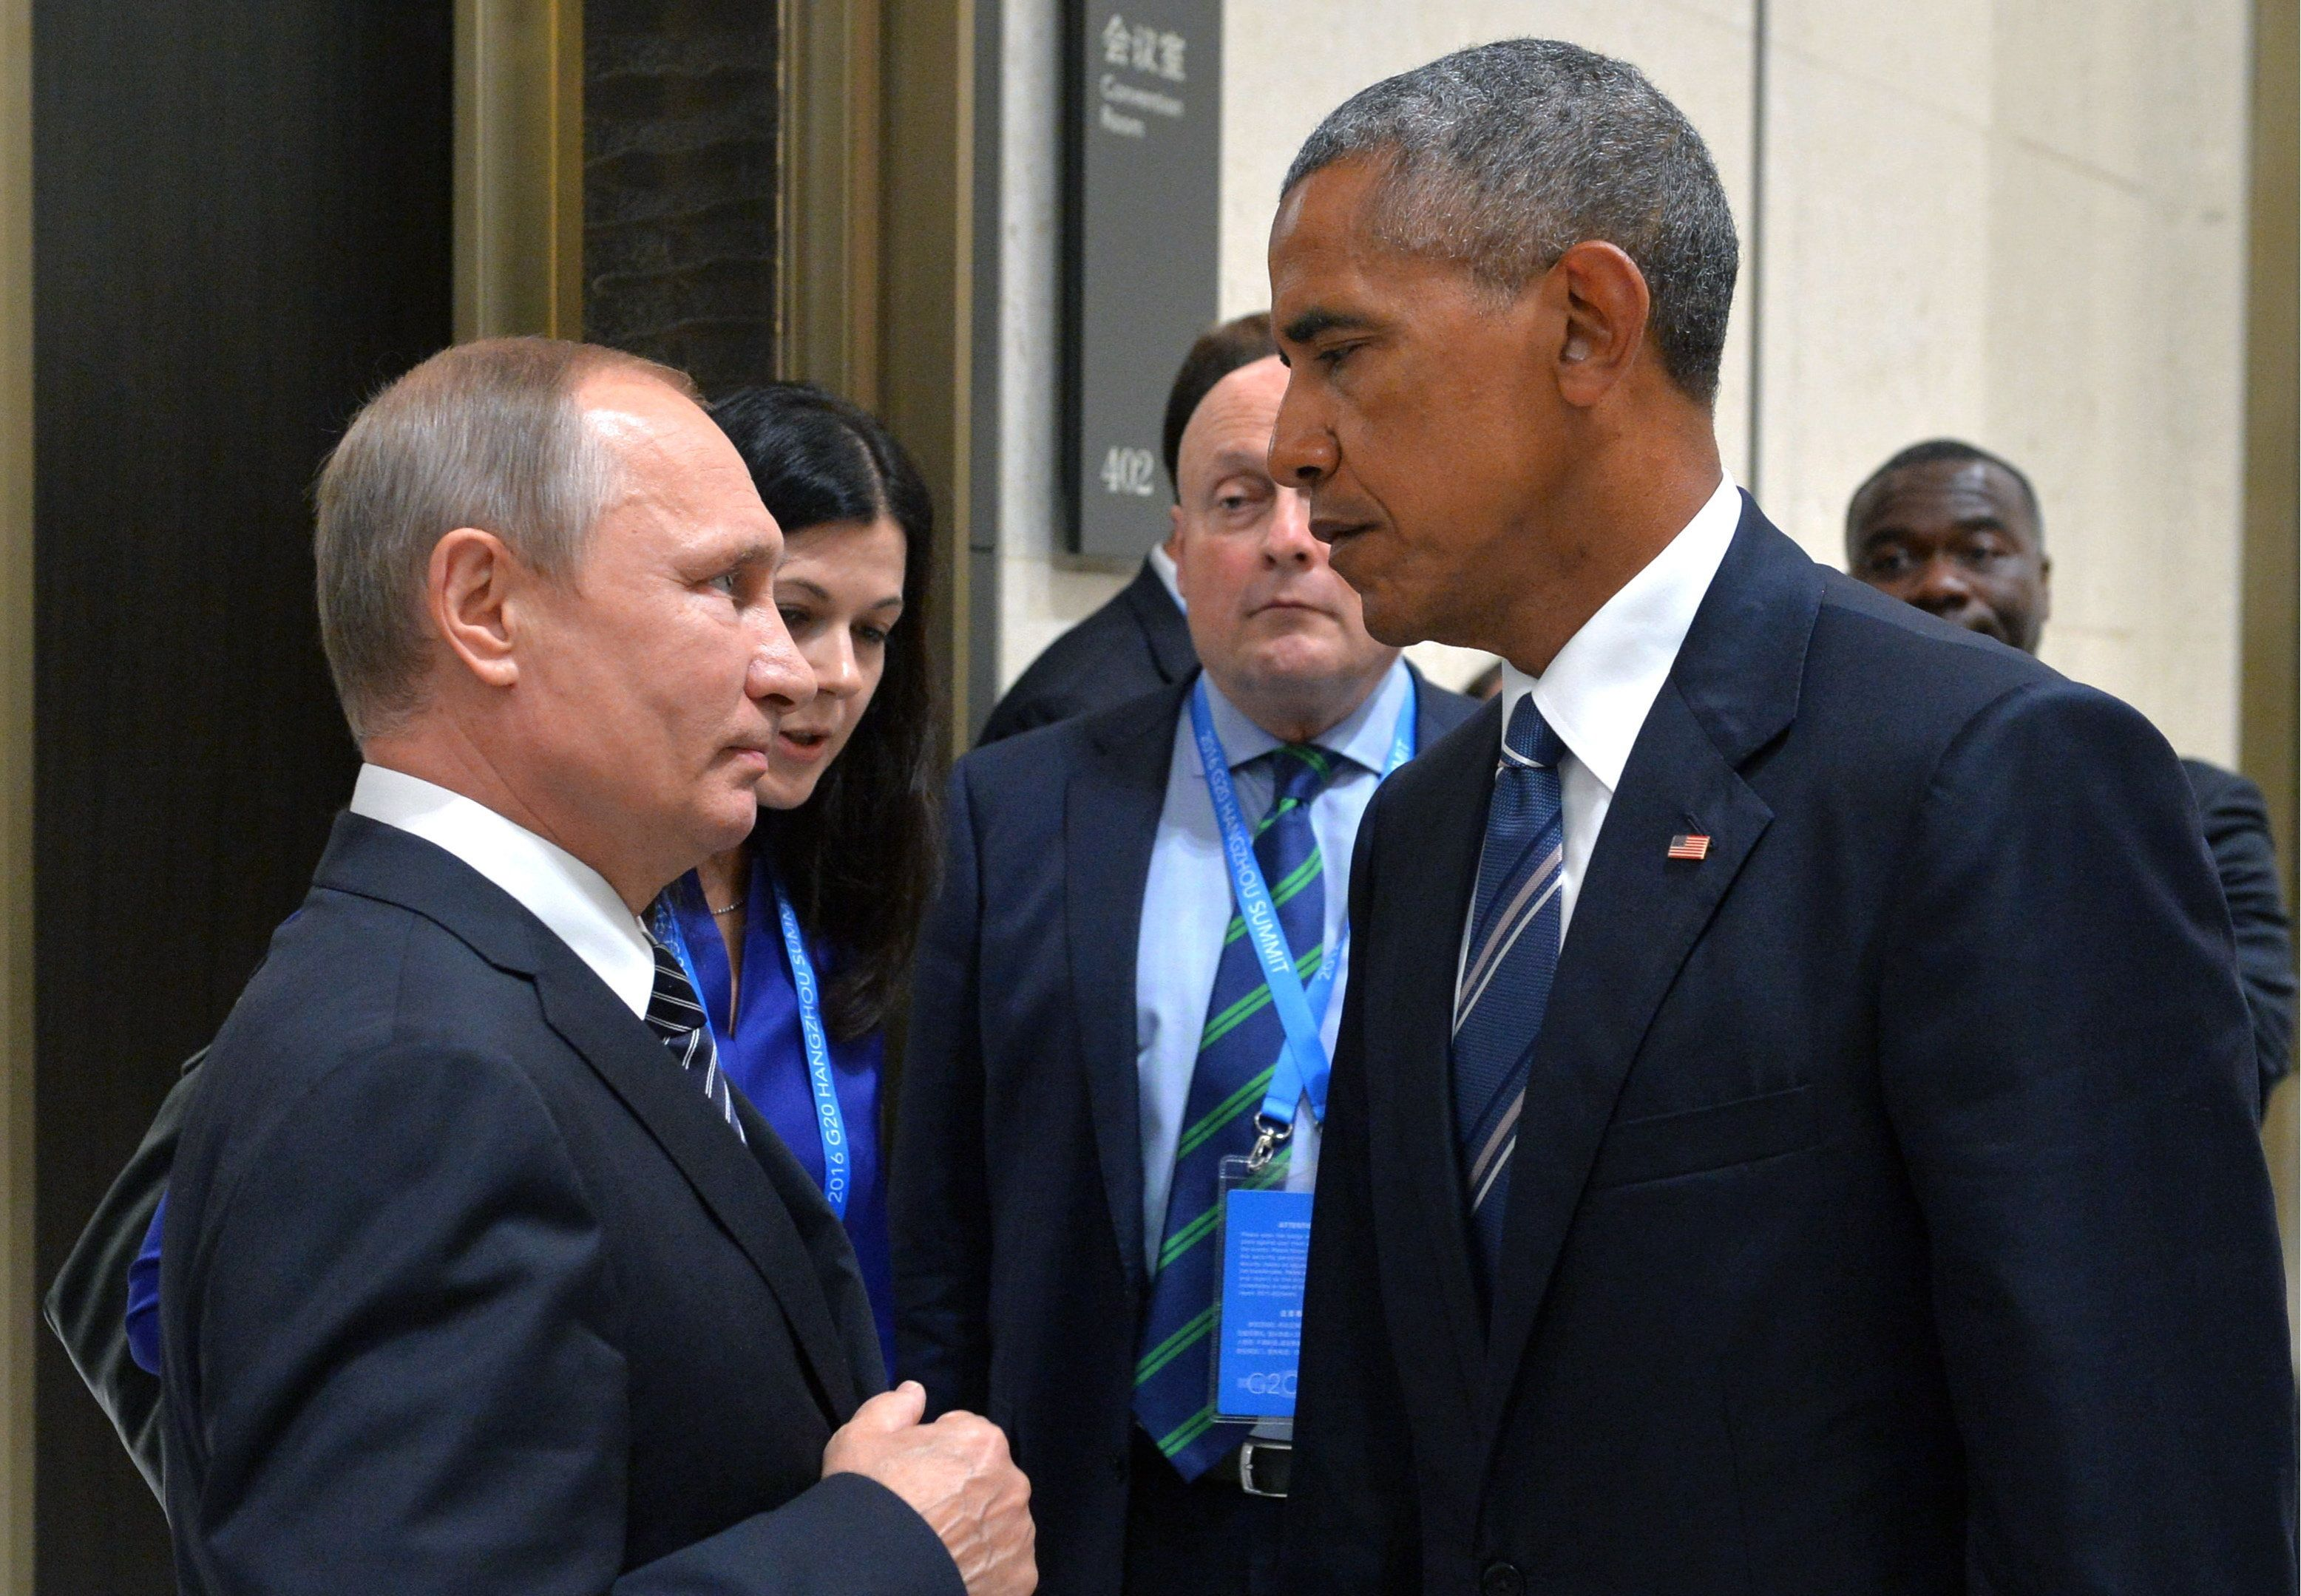 HANGZHOU, CHINA  SEPTEMBER 5, 2016: Russia's President Vladimir Putin (L) and US President Barack Obama meet on the sidelines of the G20 summit. Alexei Druzhinin/Russian Presidential Press and Information Office/TASS (Photo by Alexei Druzhinin\TASS via Getty Images)